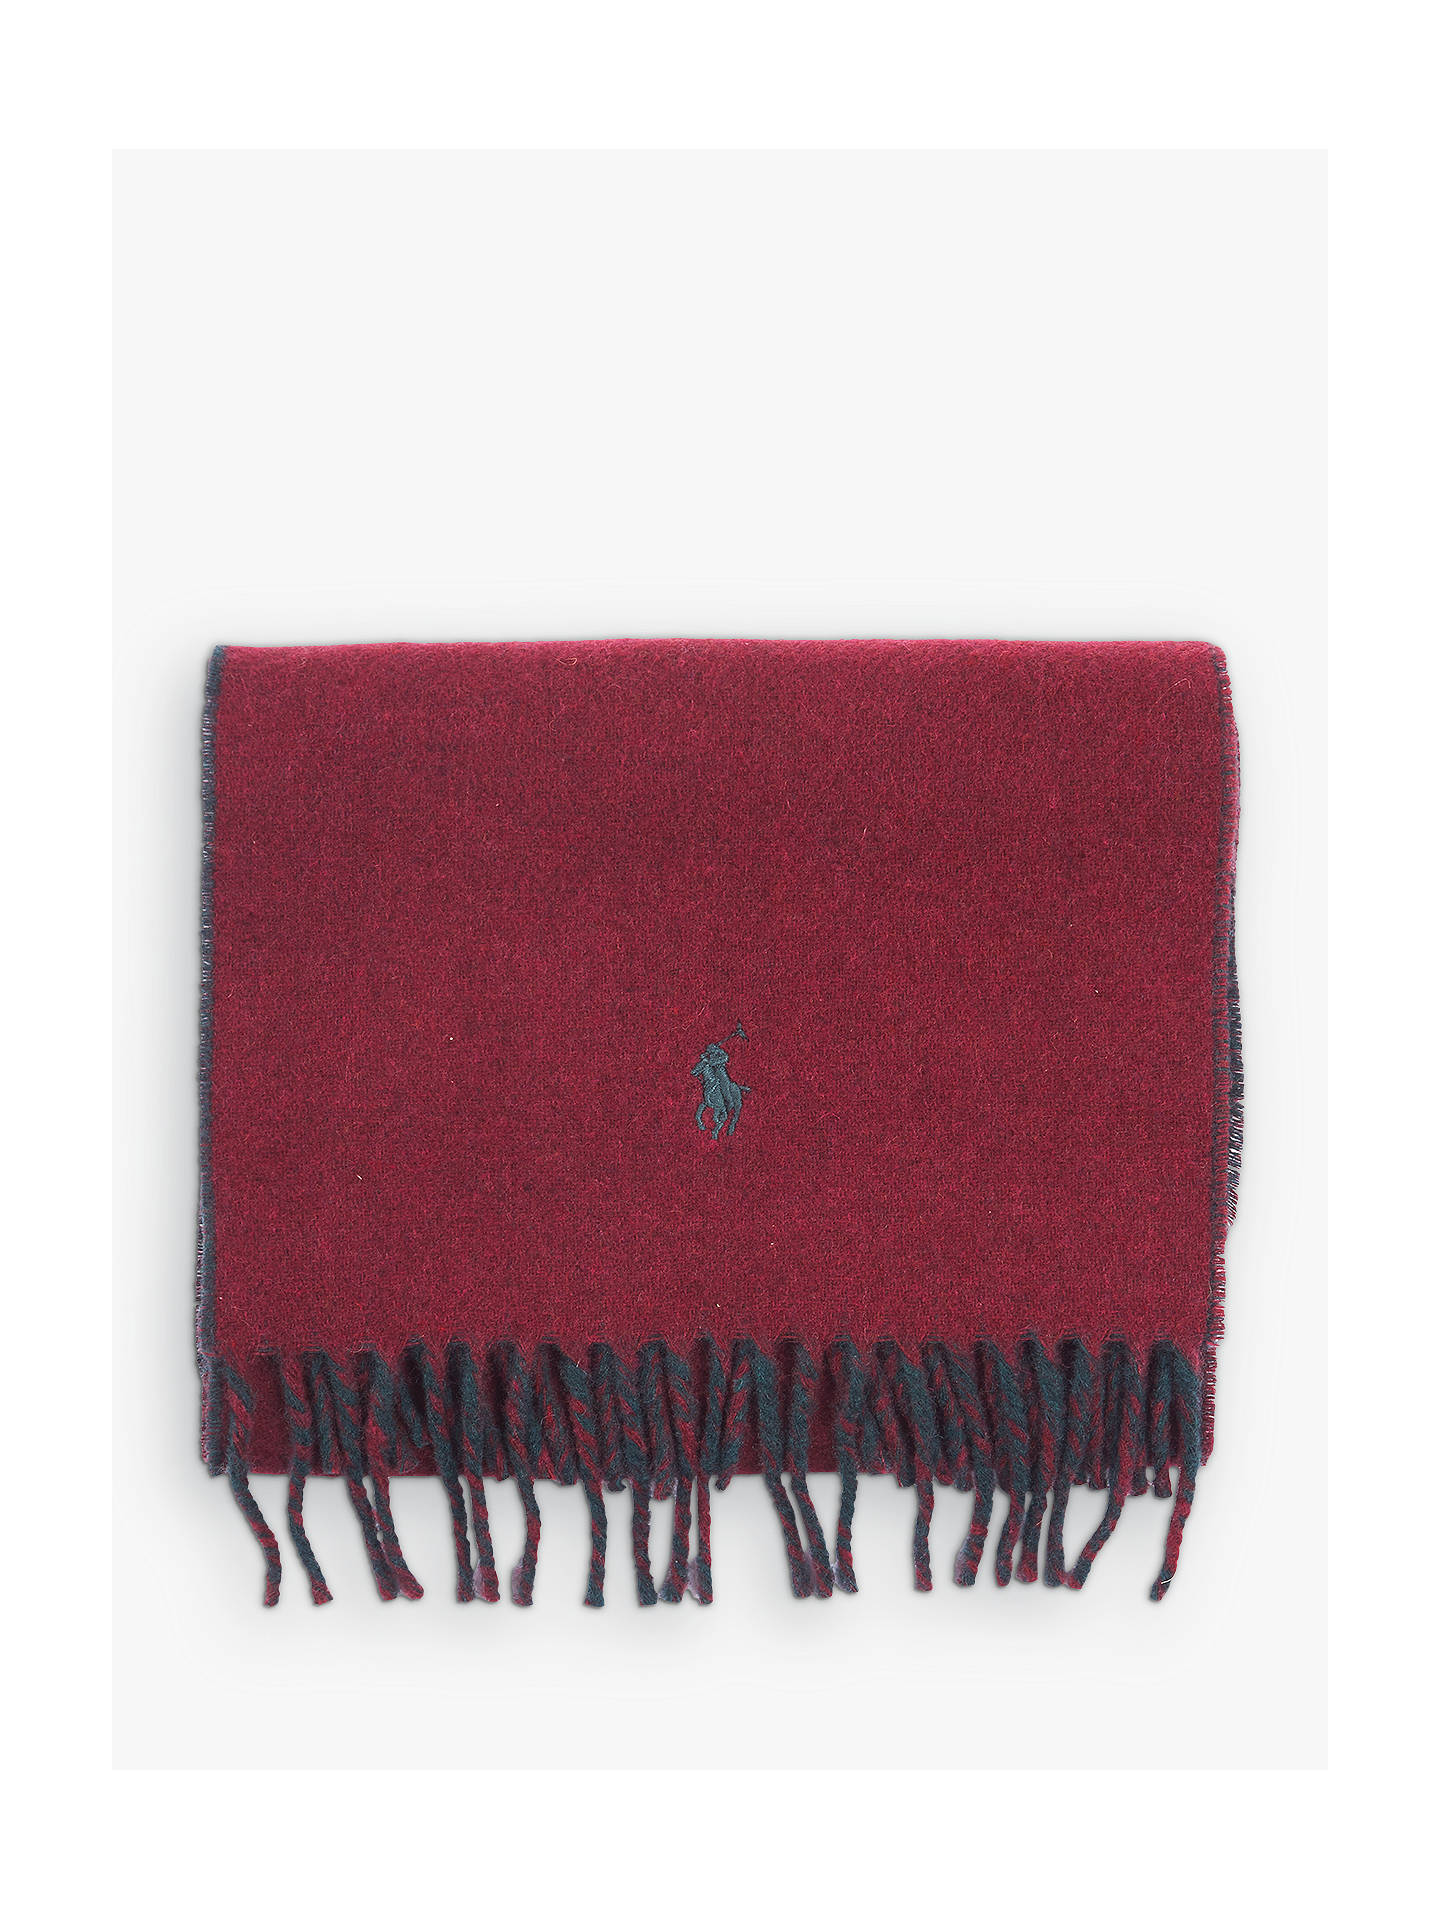 BuyPolo Ralph Lauren Reversible Plain Scarf, One Size, Red, One Size Online at johnlewis.com